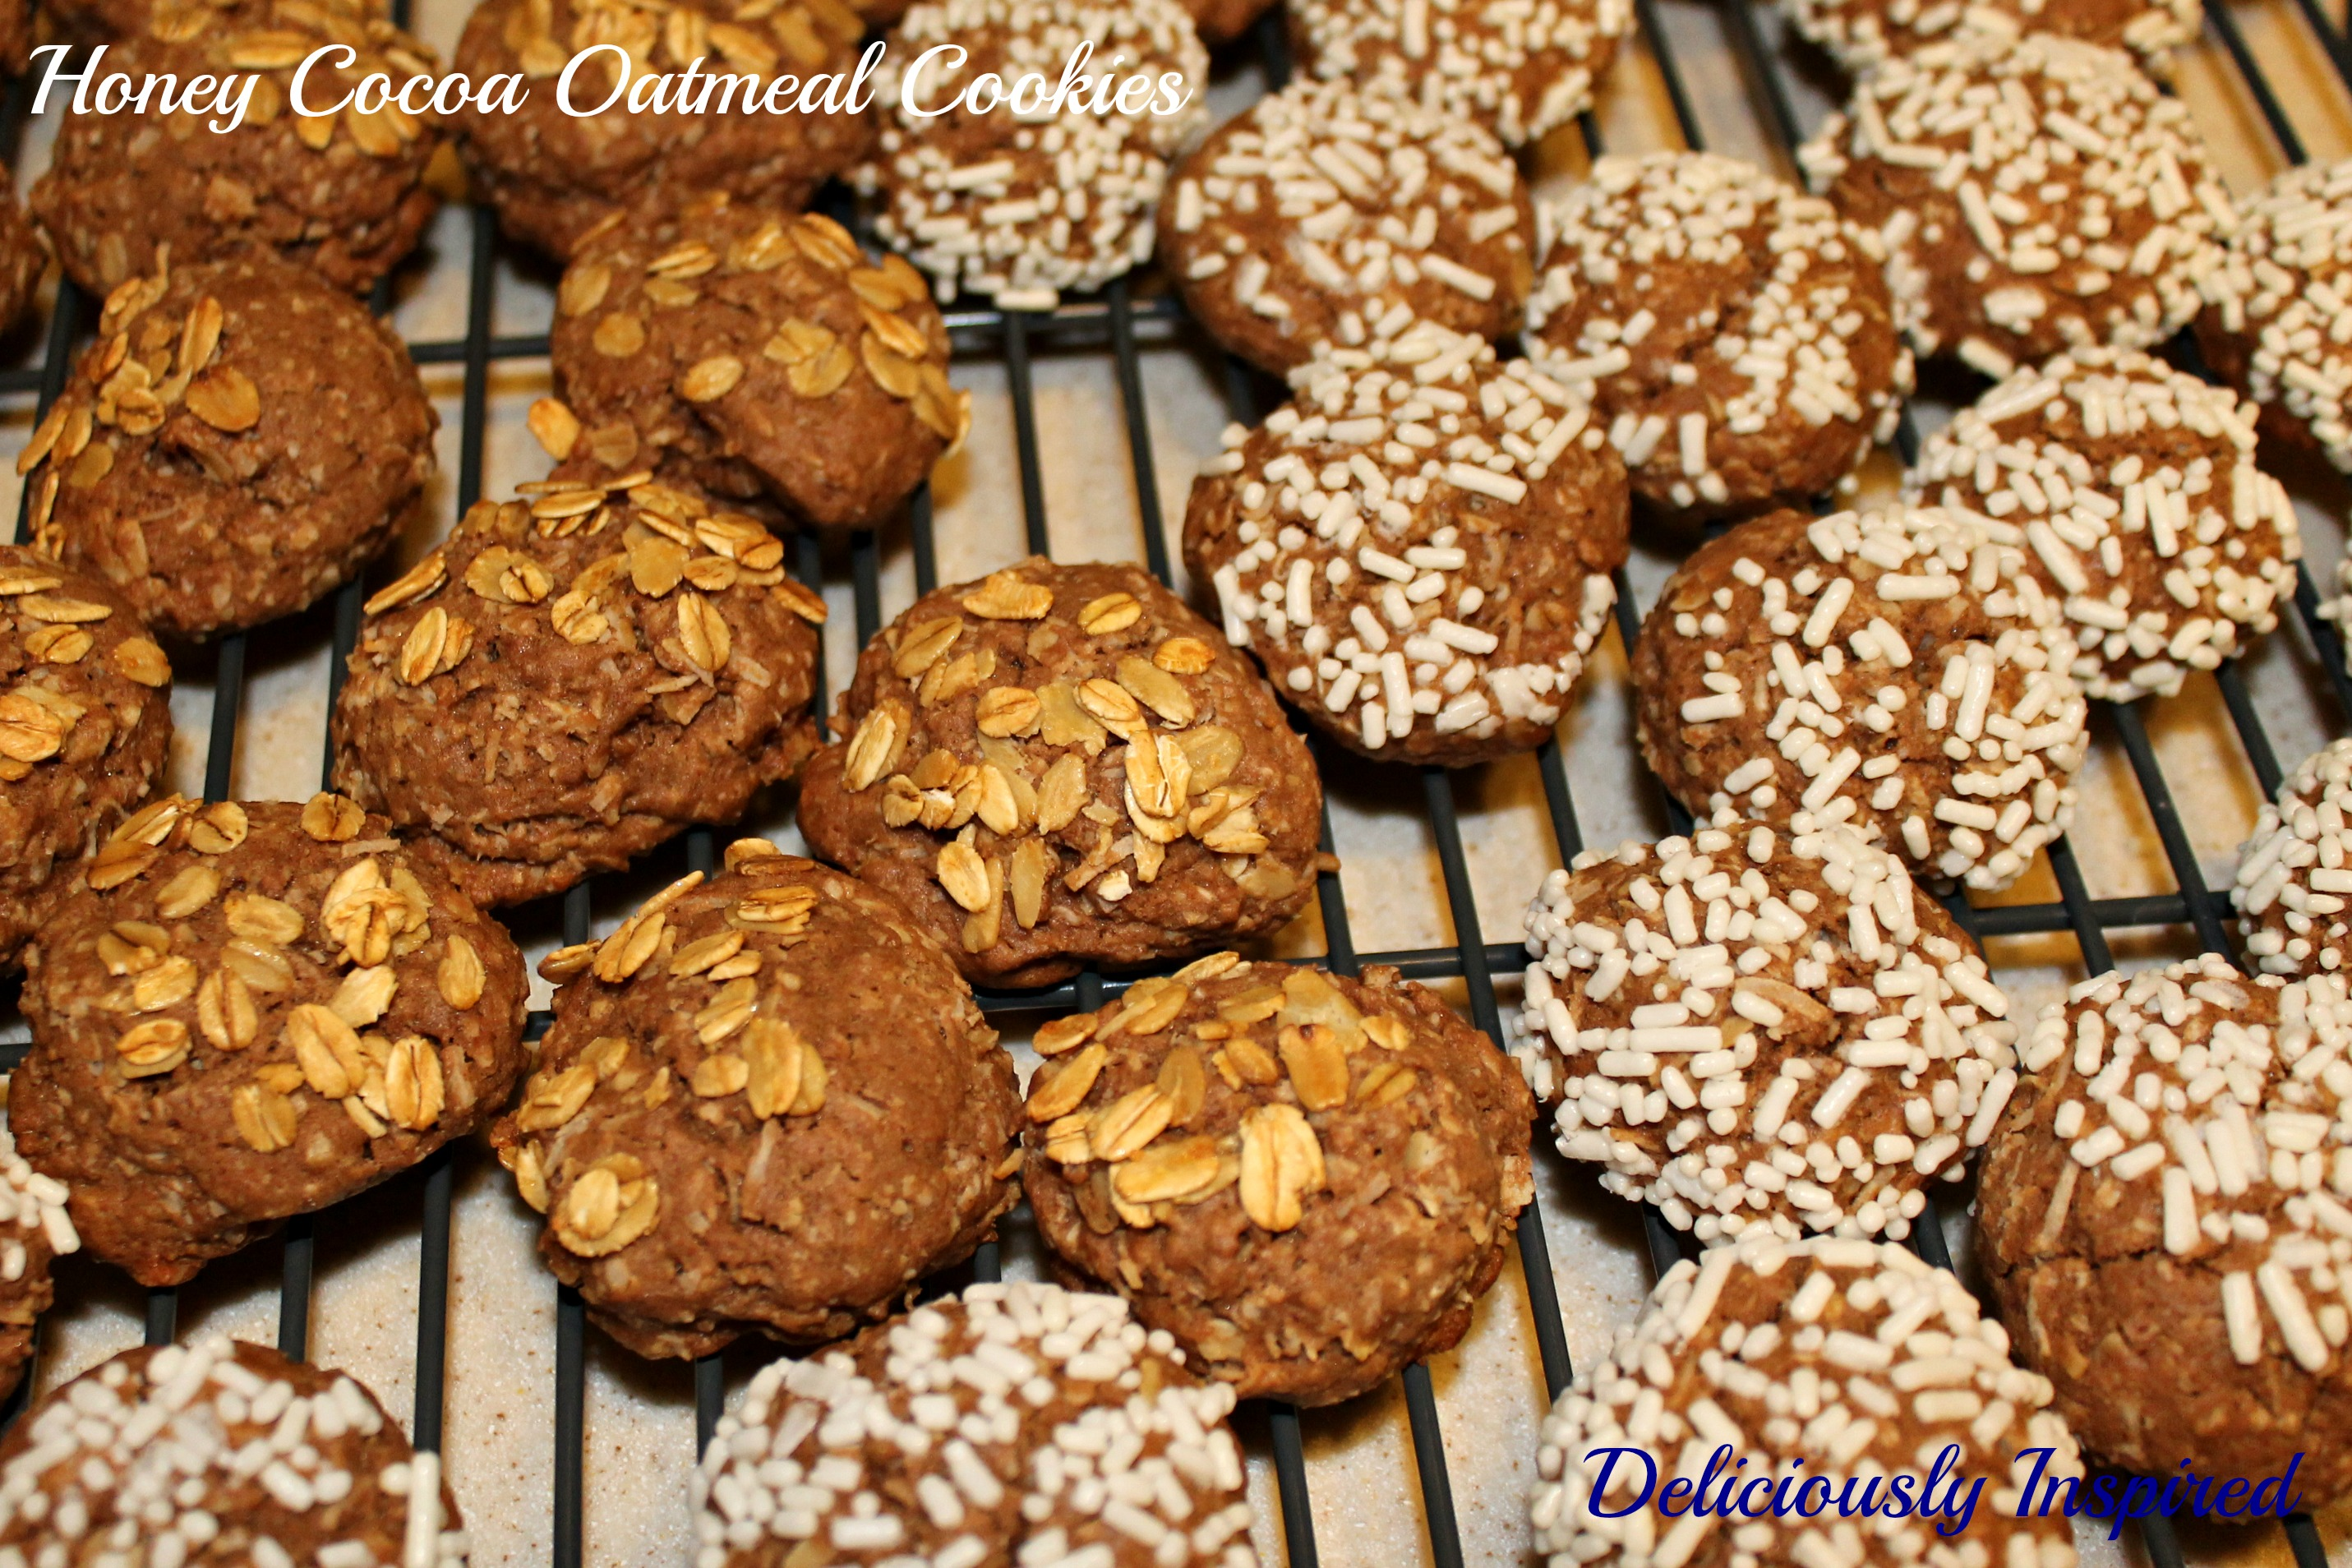 Honey Cocoa Oatmeal Cookies - Cooling Rack